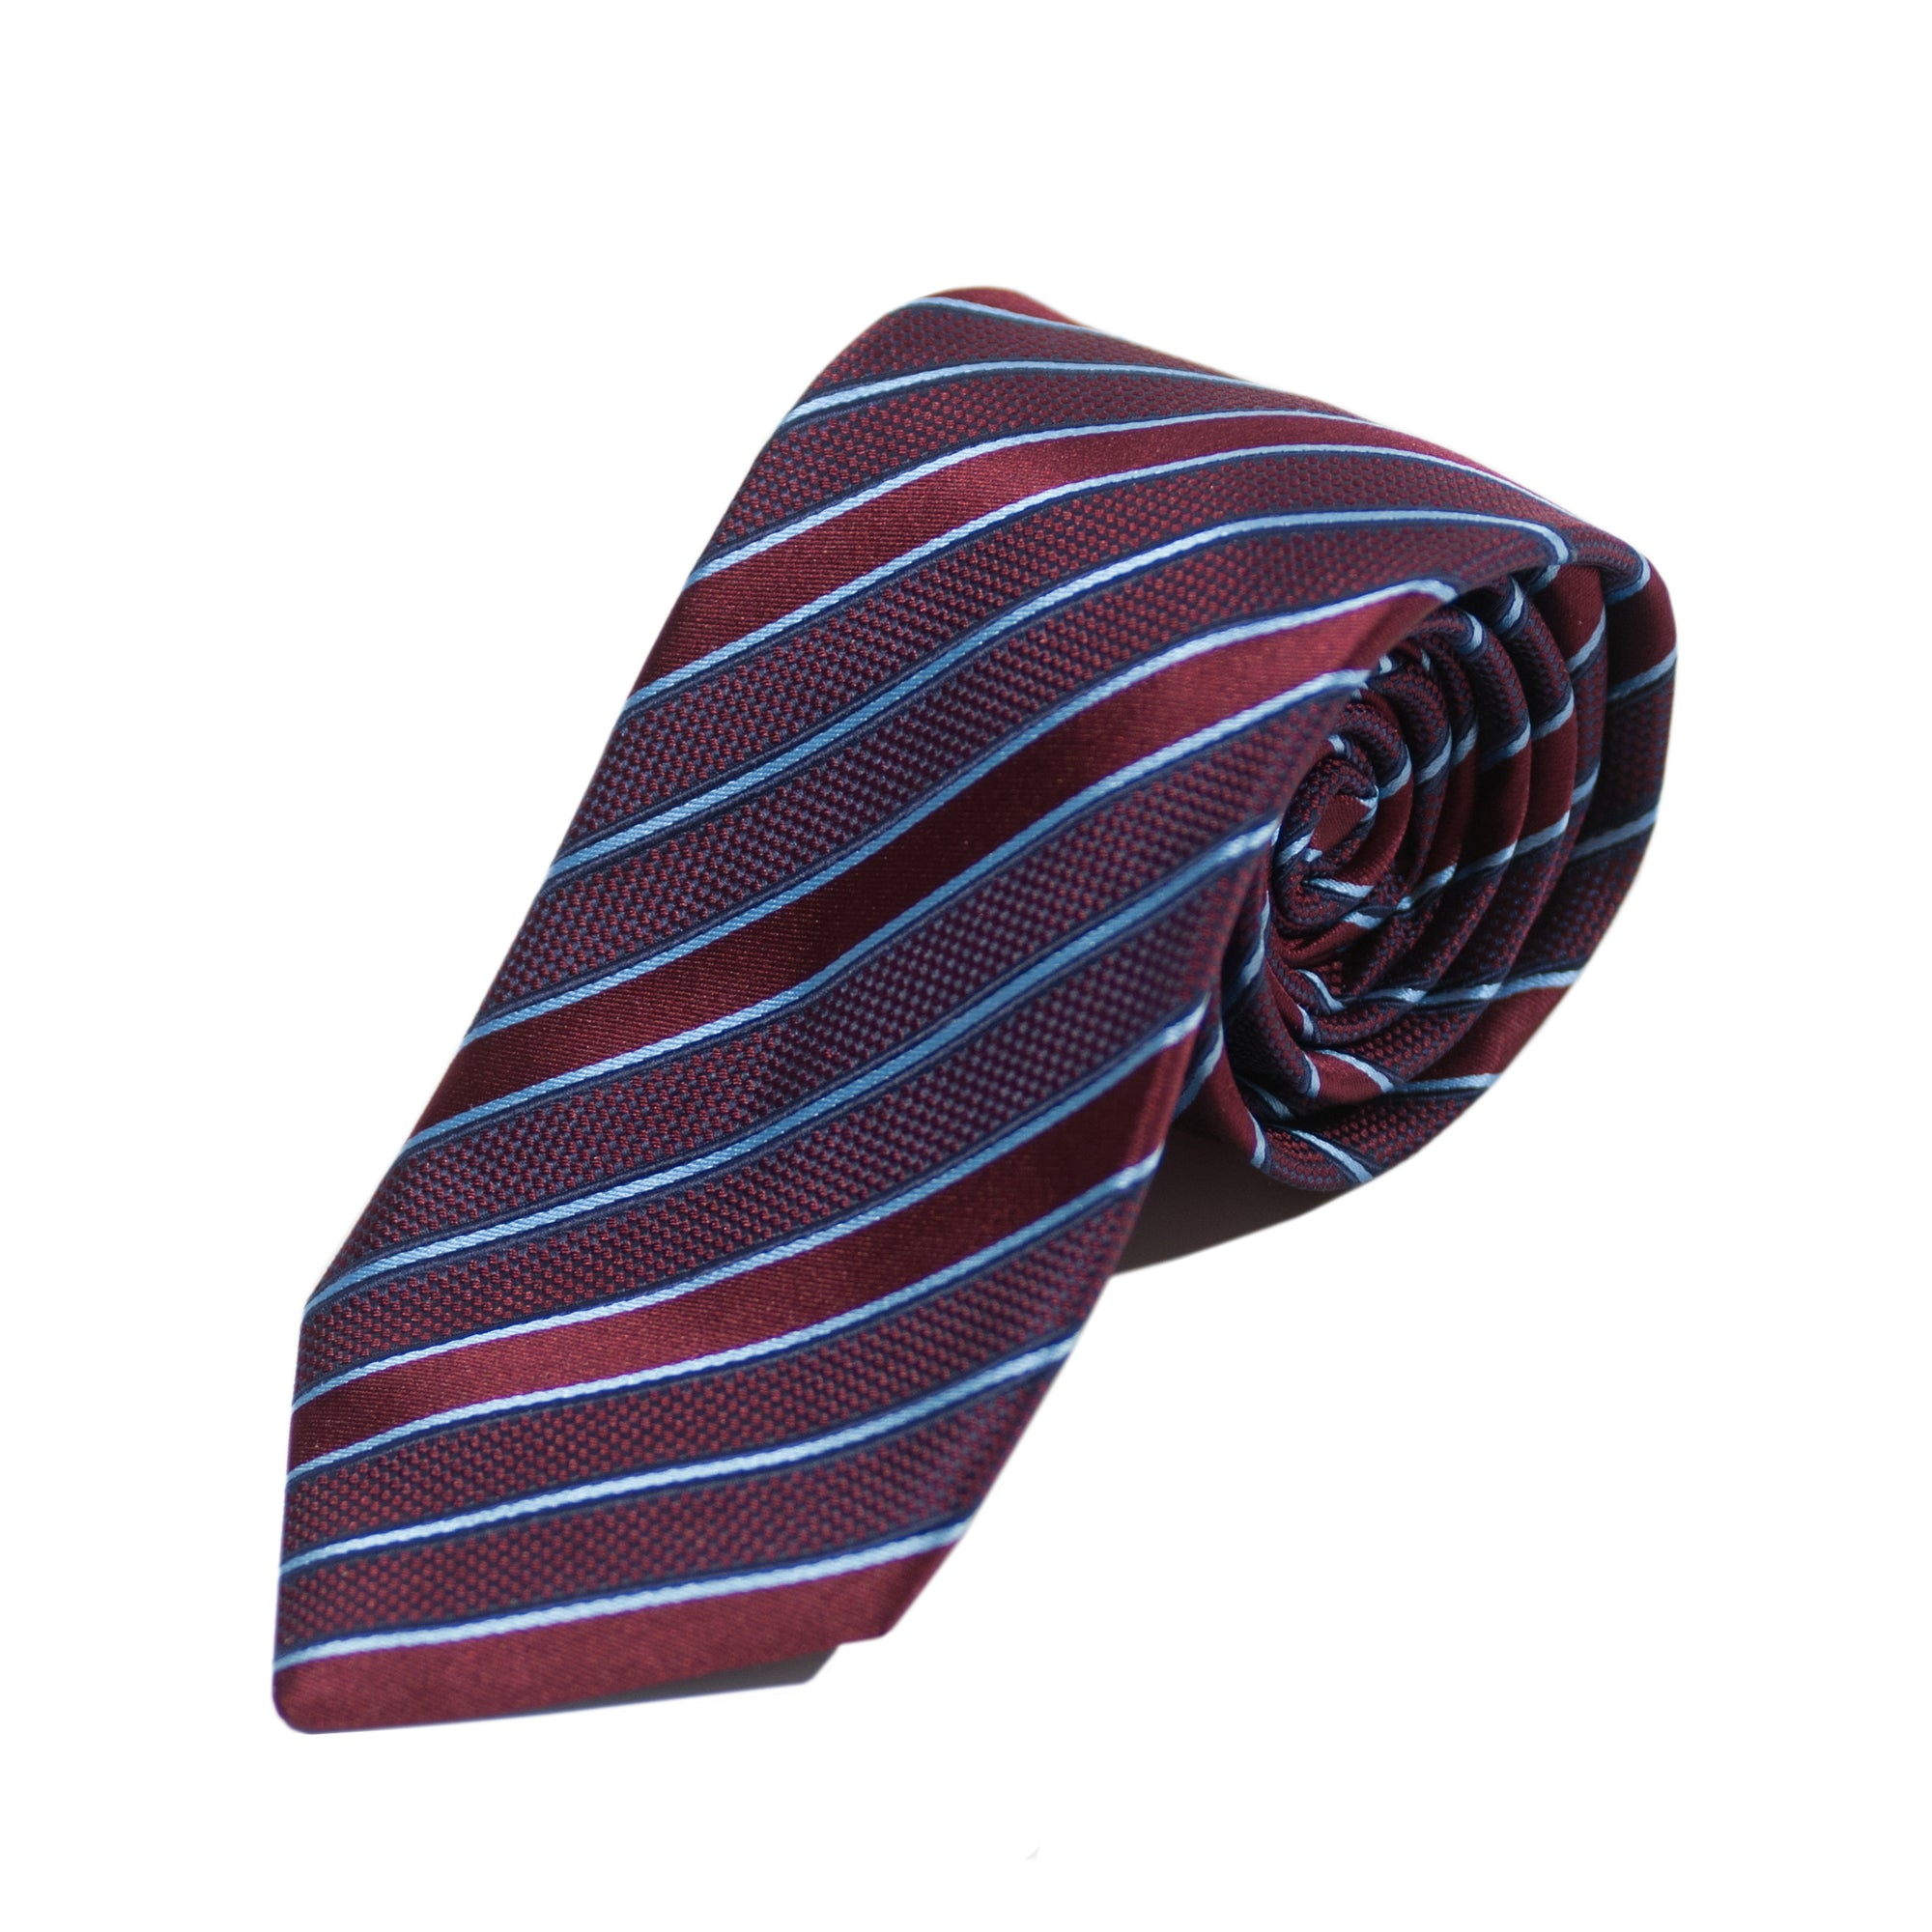 Altea Burgundy Striped Silk Tie